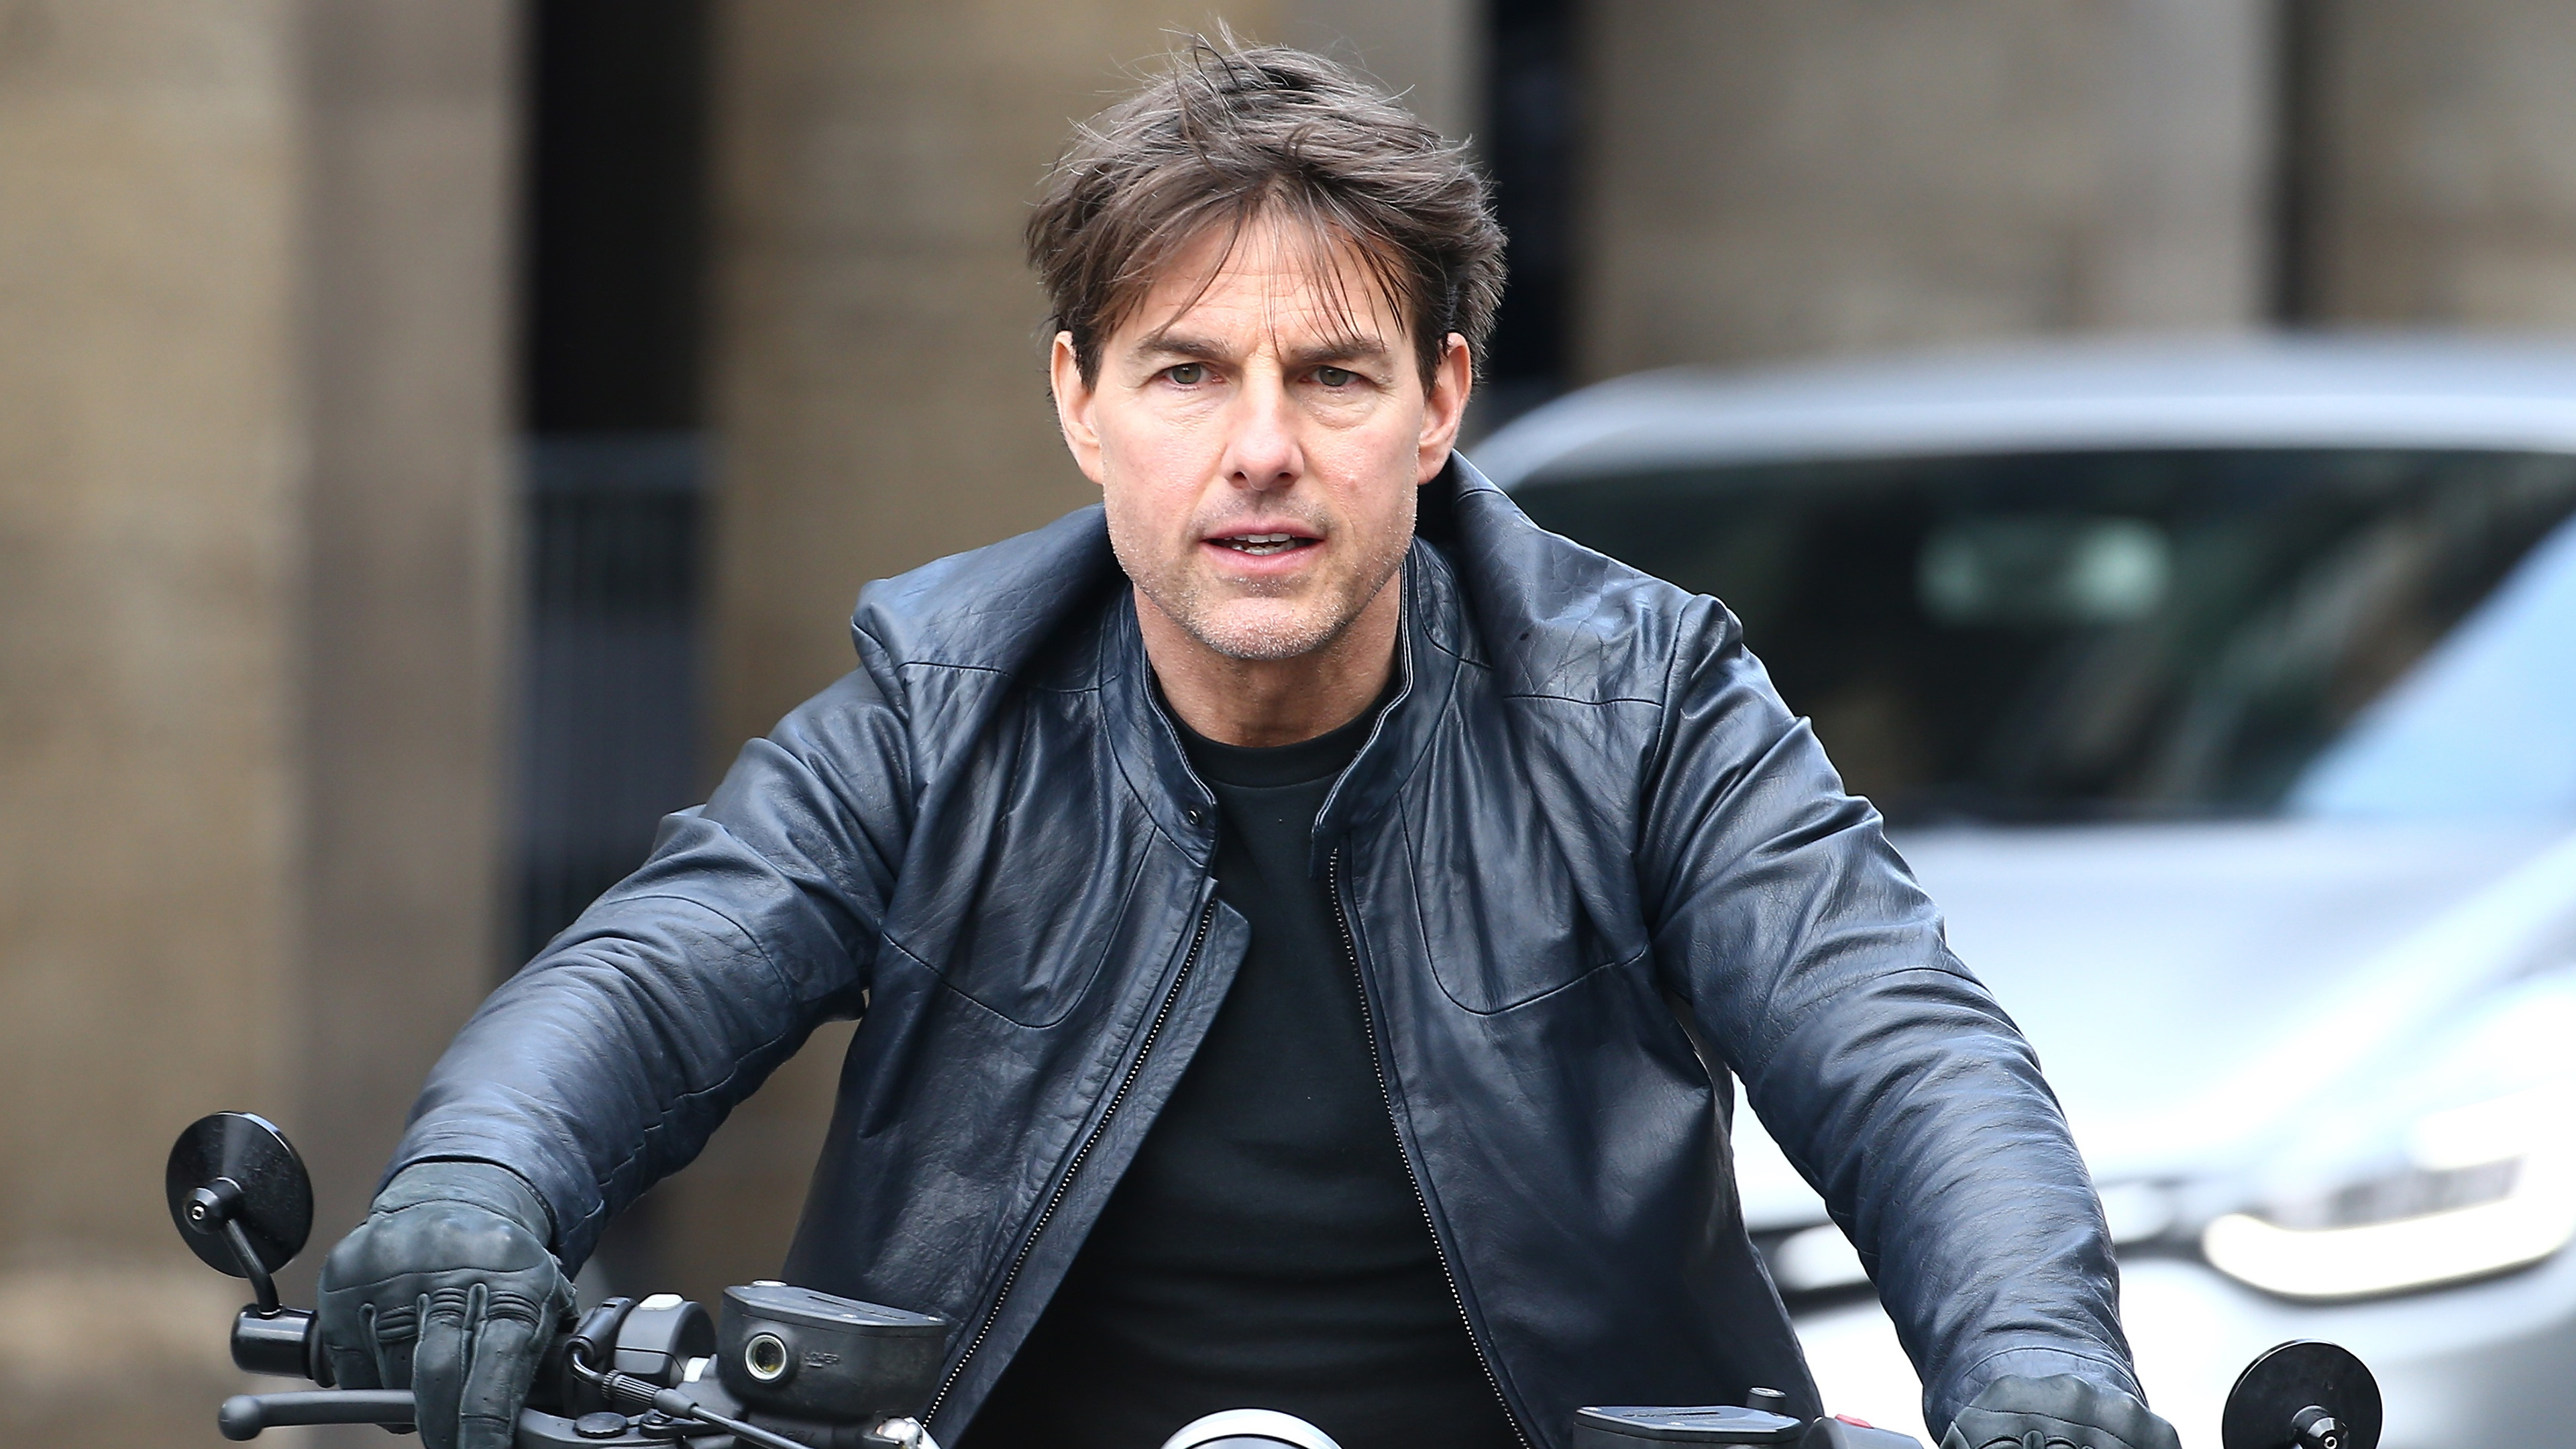 Free Download Mission Impossible Fallout Tom Cruise 4k 18330 3840x2160 For Your Desktop Mobile Tablet Explore 45 Tom Cruise Mission Impossible Wallpaper Tom Cruise Mission Impossible Wallpaper Mission Impossible